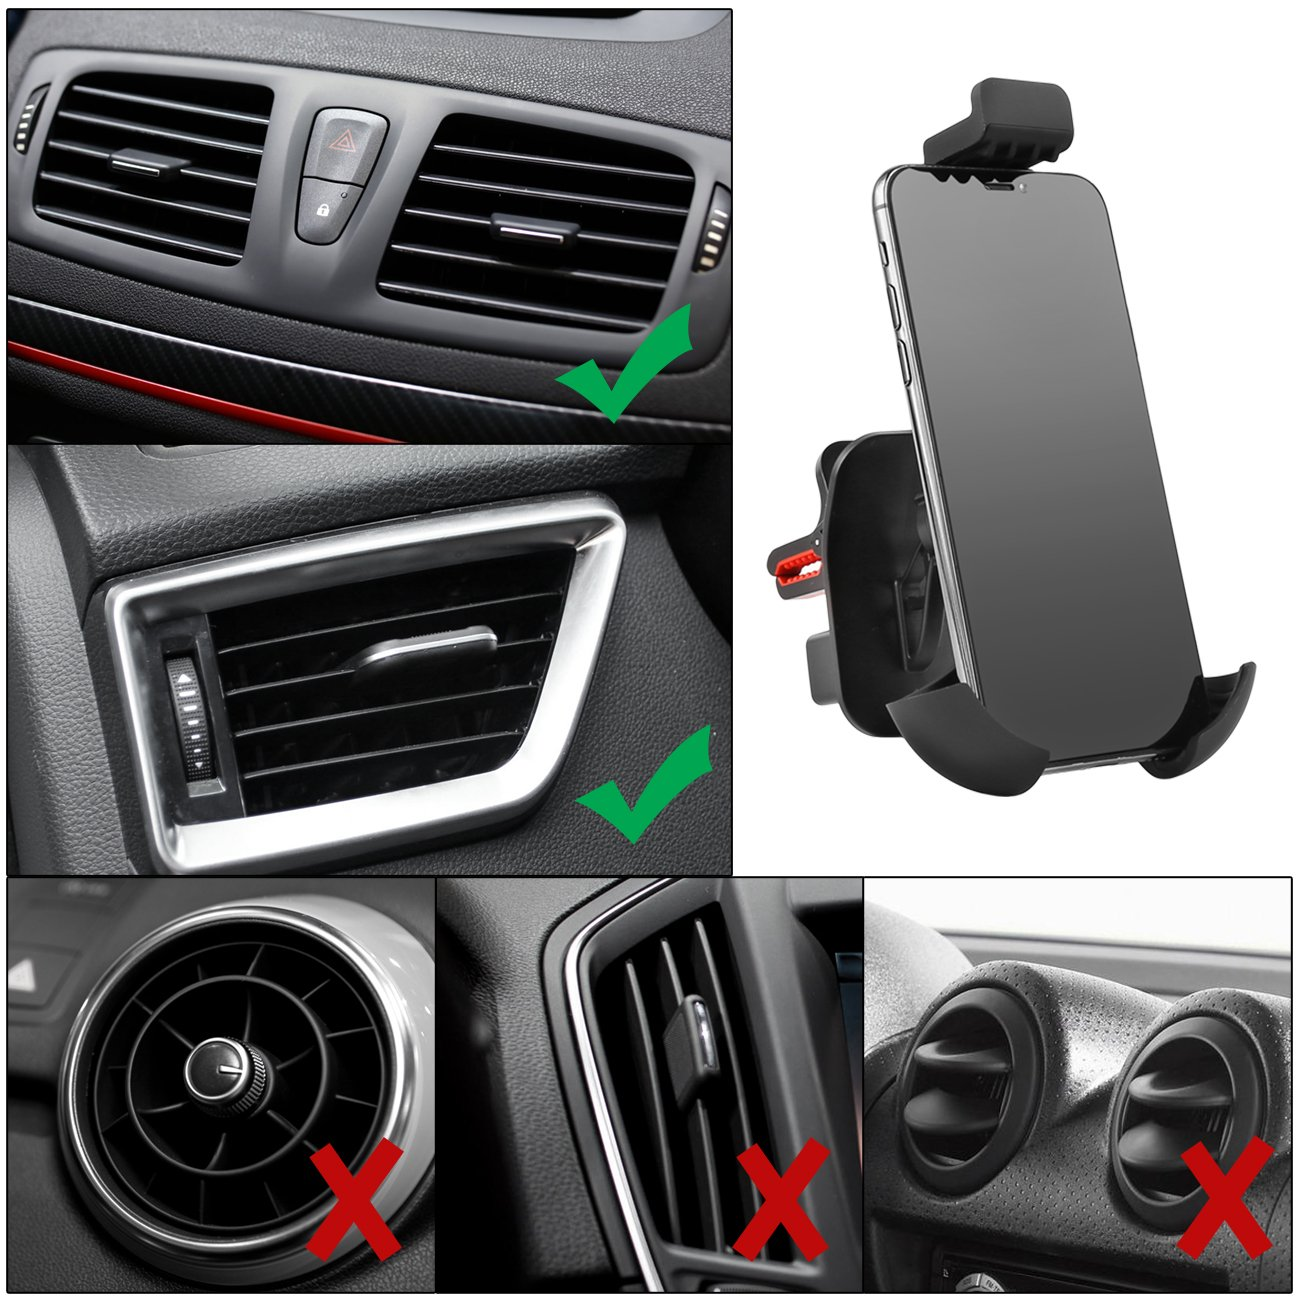 Phone Holder for Car,360 ° Rotation Car Phone Mount for iphone,Universal Car Air Vent Phone Holder,sunrin